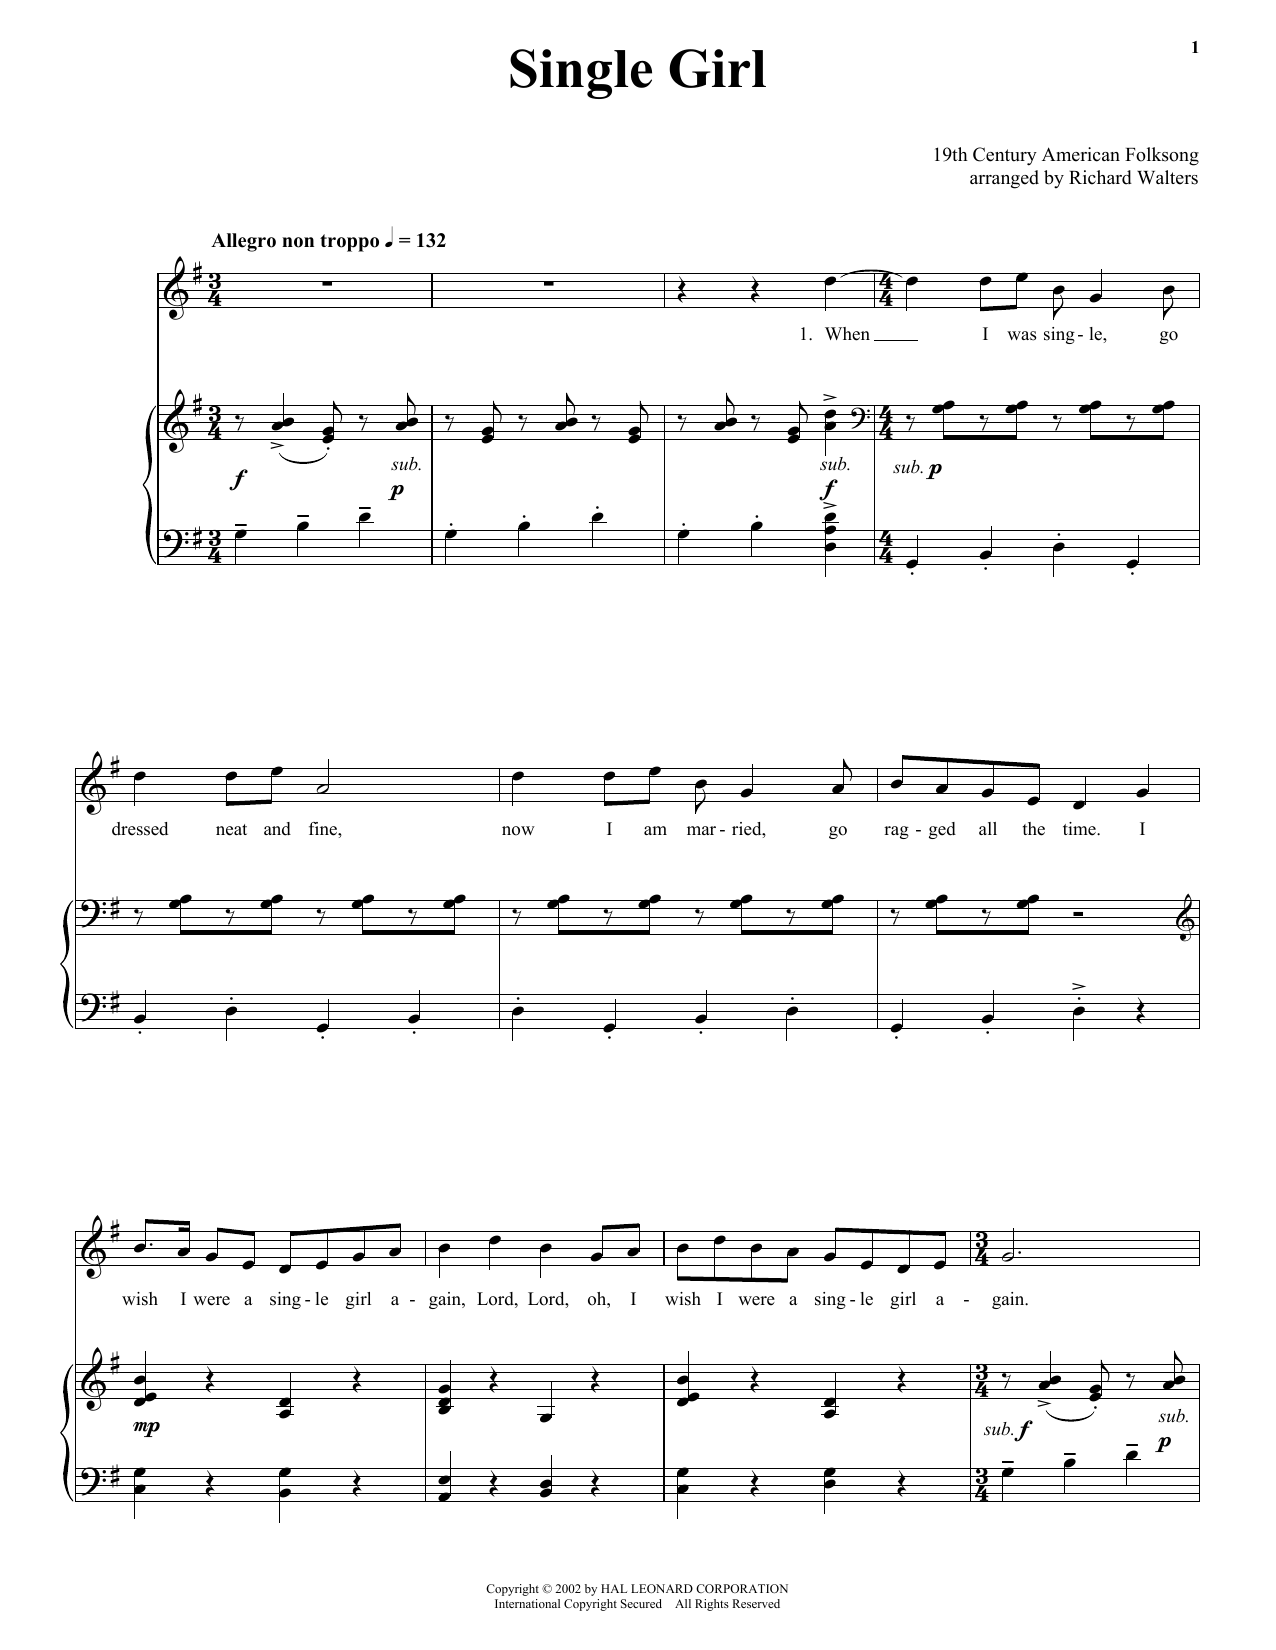 19th Century American Folksong Single Girl sheet music notes and chords